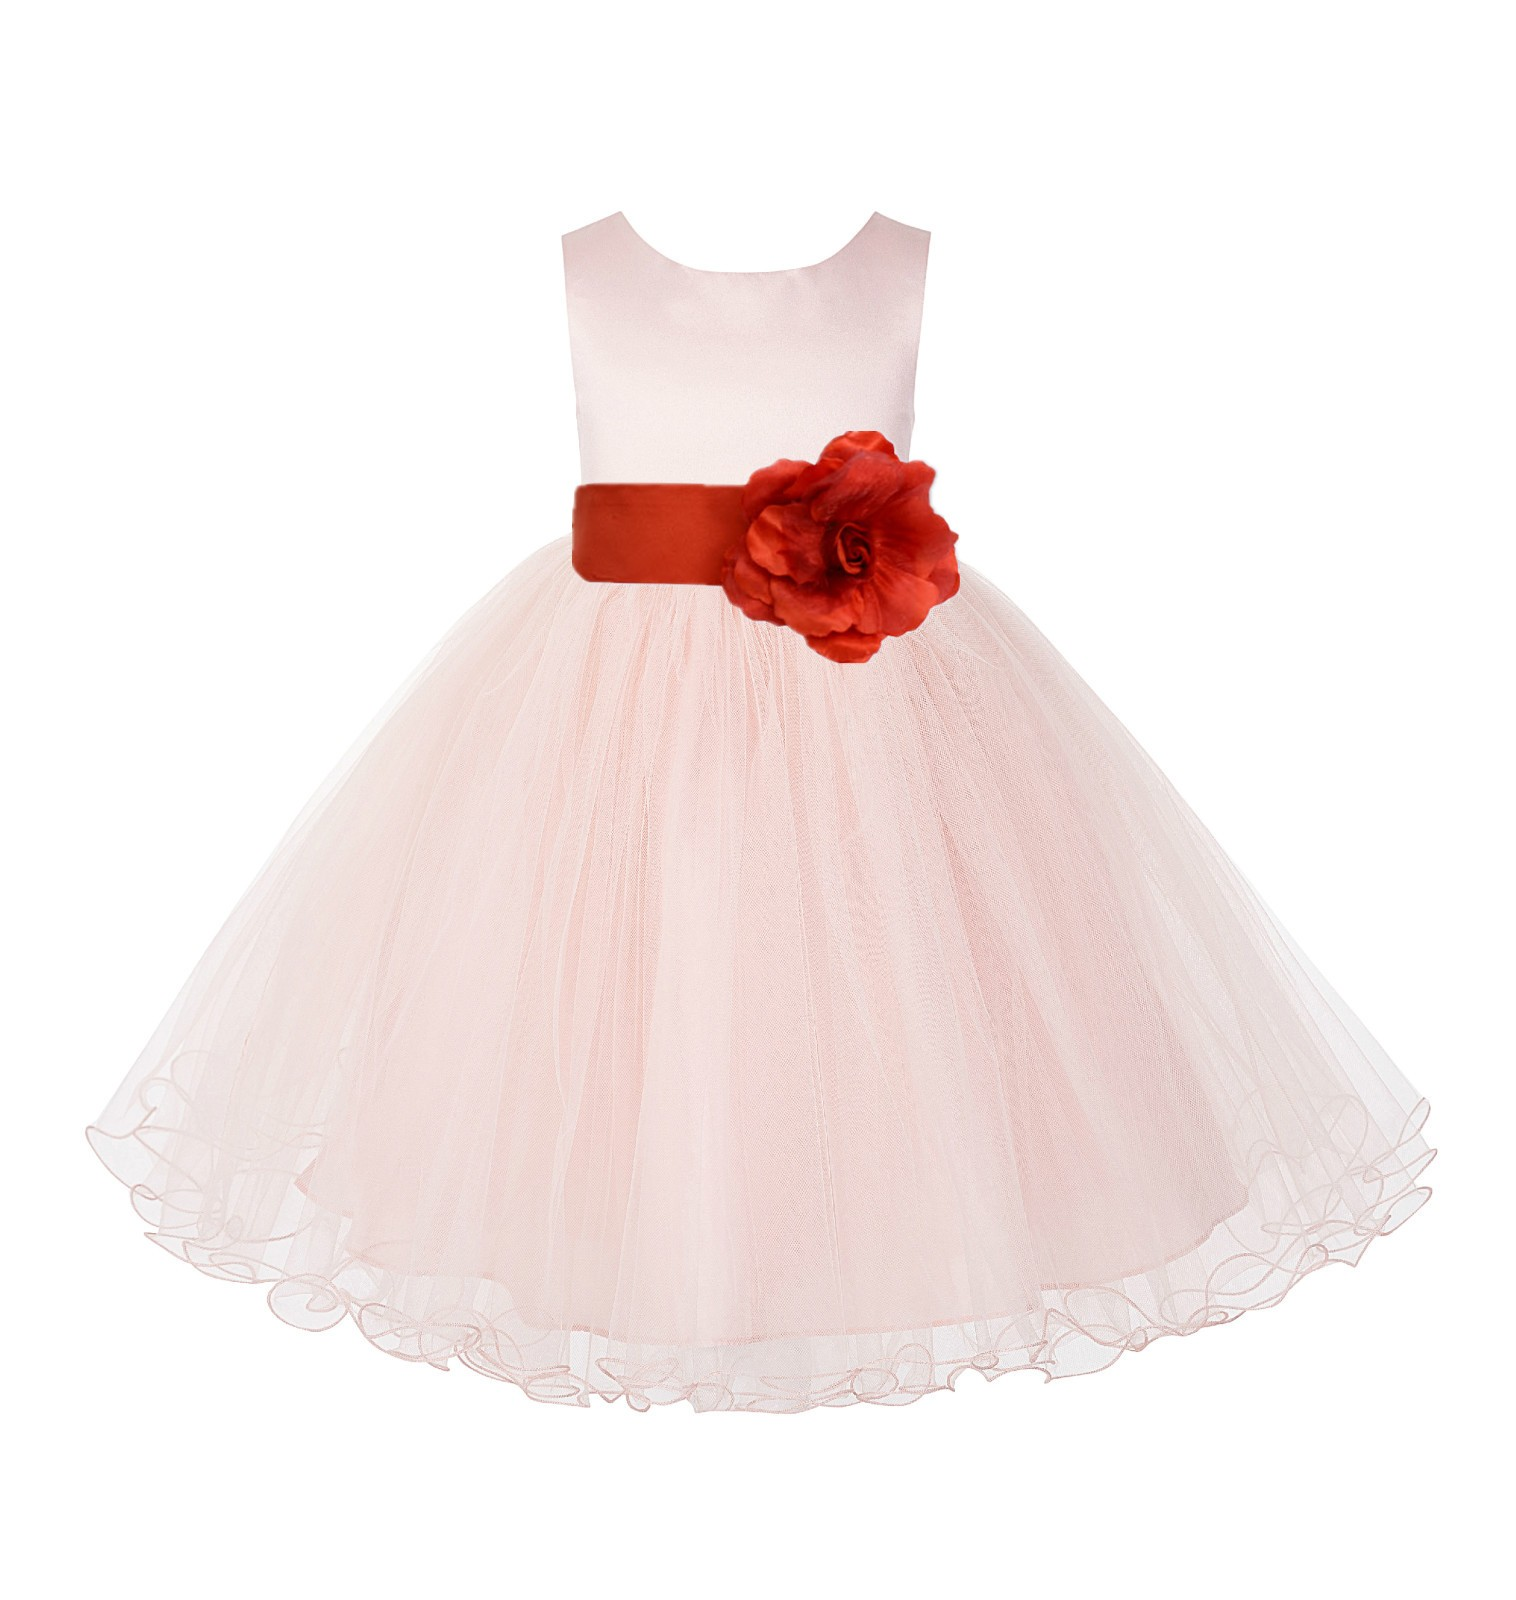 Blush Pink / PersimmonTulle Rattail Edge Flower Girl Dress Pageant Recital 829S